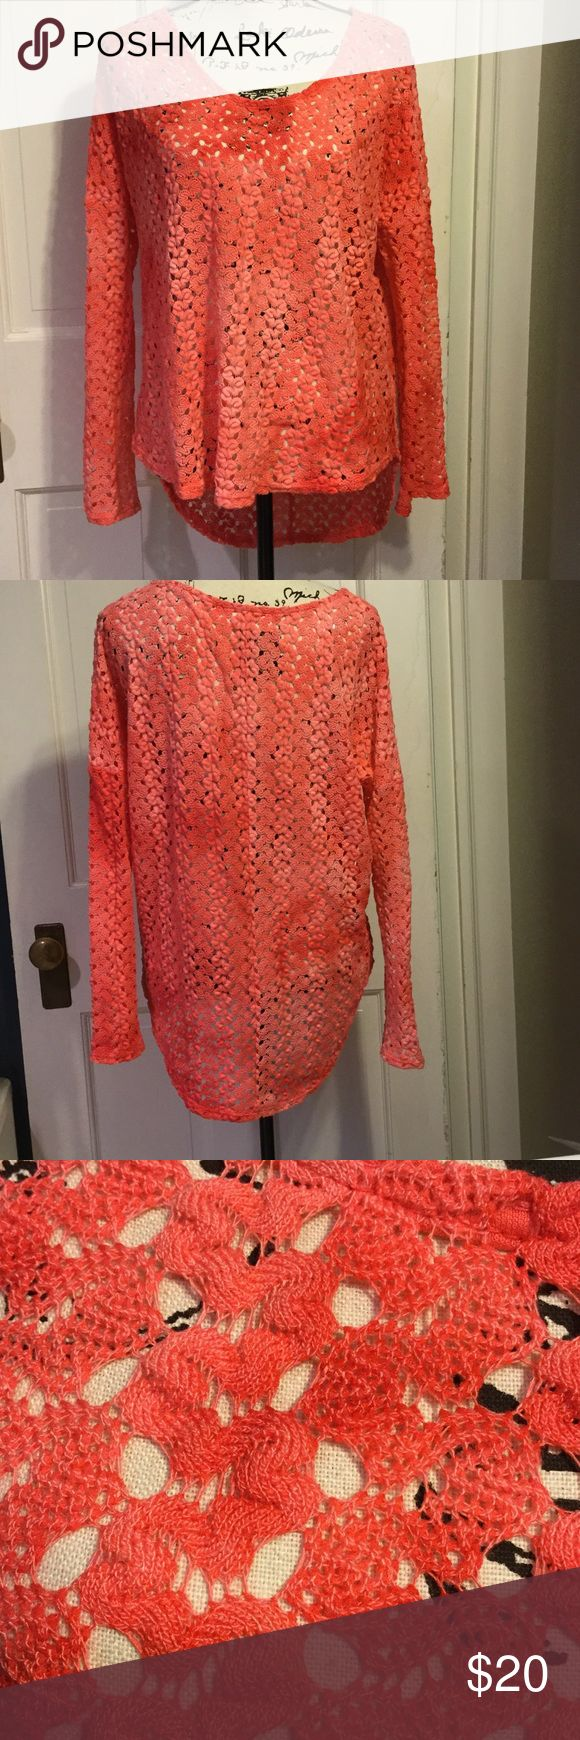 Vintage Havana crochet long sleeve top coral OS NWOT Vintage Havana crochet knit see through top. long sleeves,longer back, beautiful marbled  shades of coral. This is unsized like a one size fits most.will look great with tank top, tee, or bathing suit too. Vintage Havana Tops Blouses